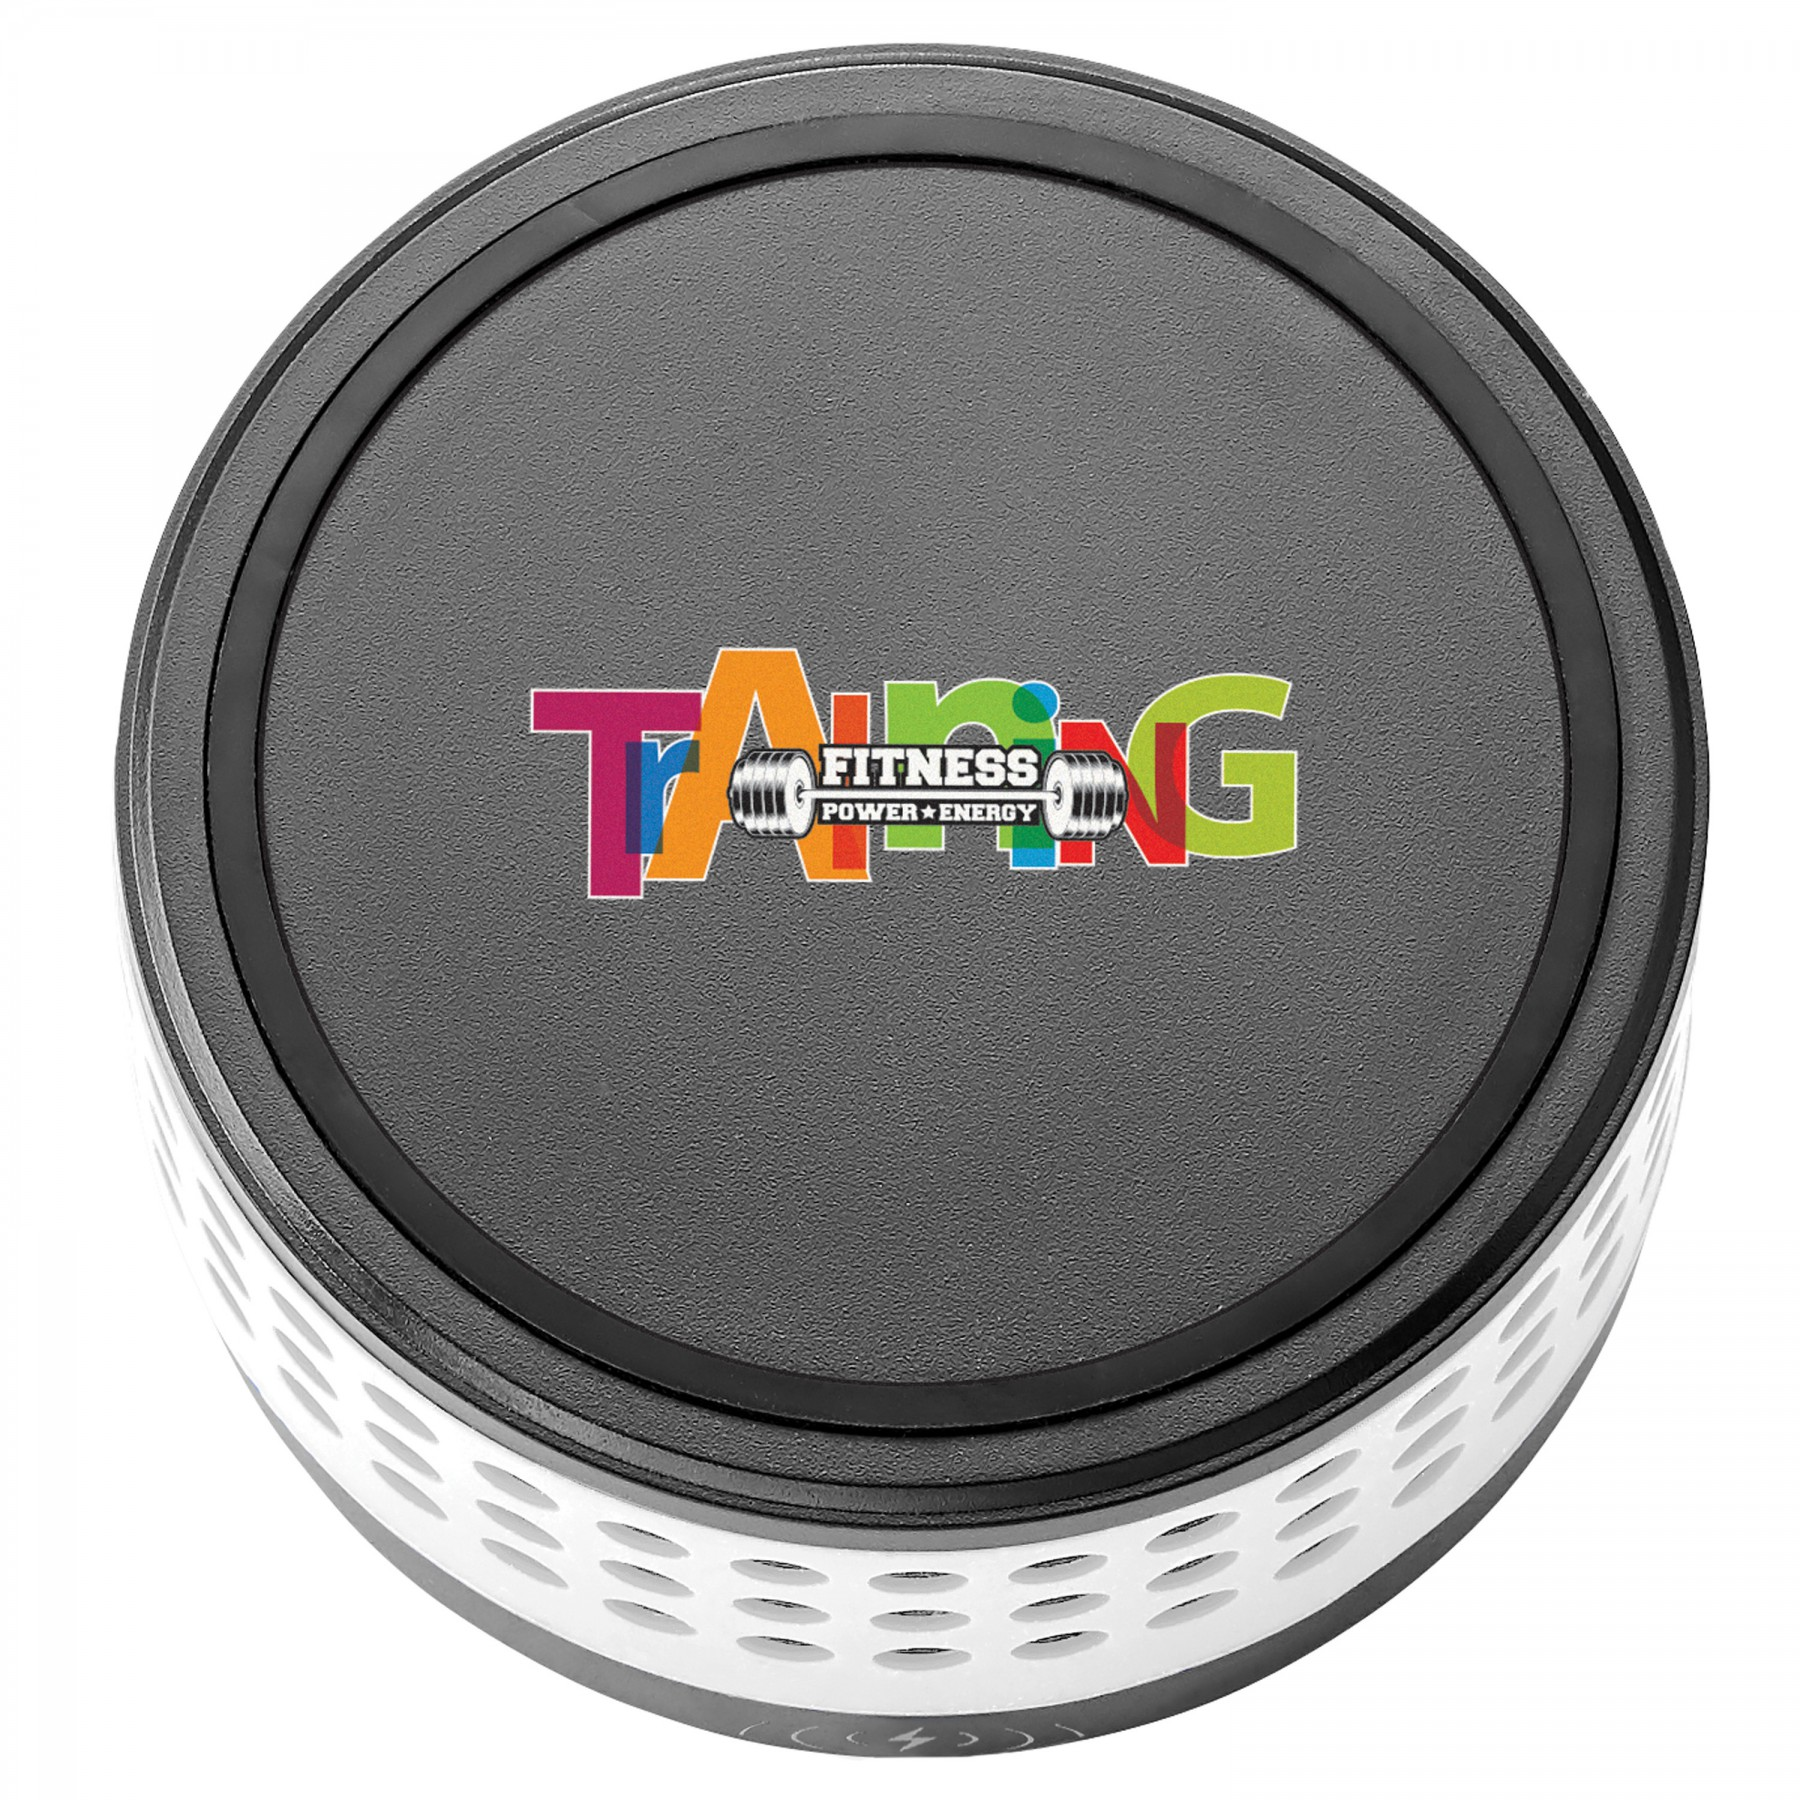 Miami 2-In-1 Wireless Speaker / Wireless Charging Dock, T252, Full Colour Imprint